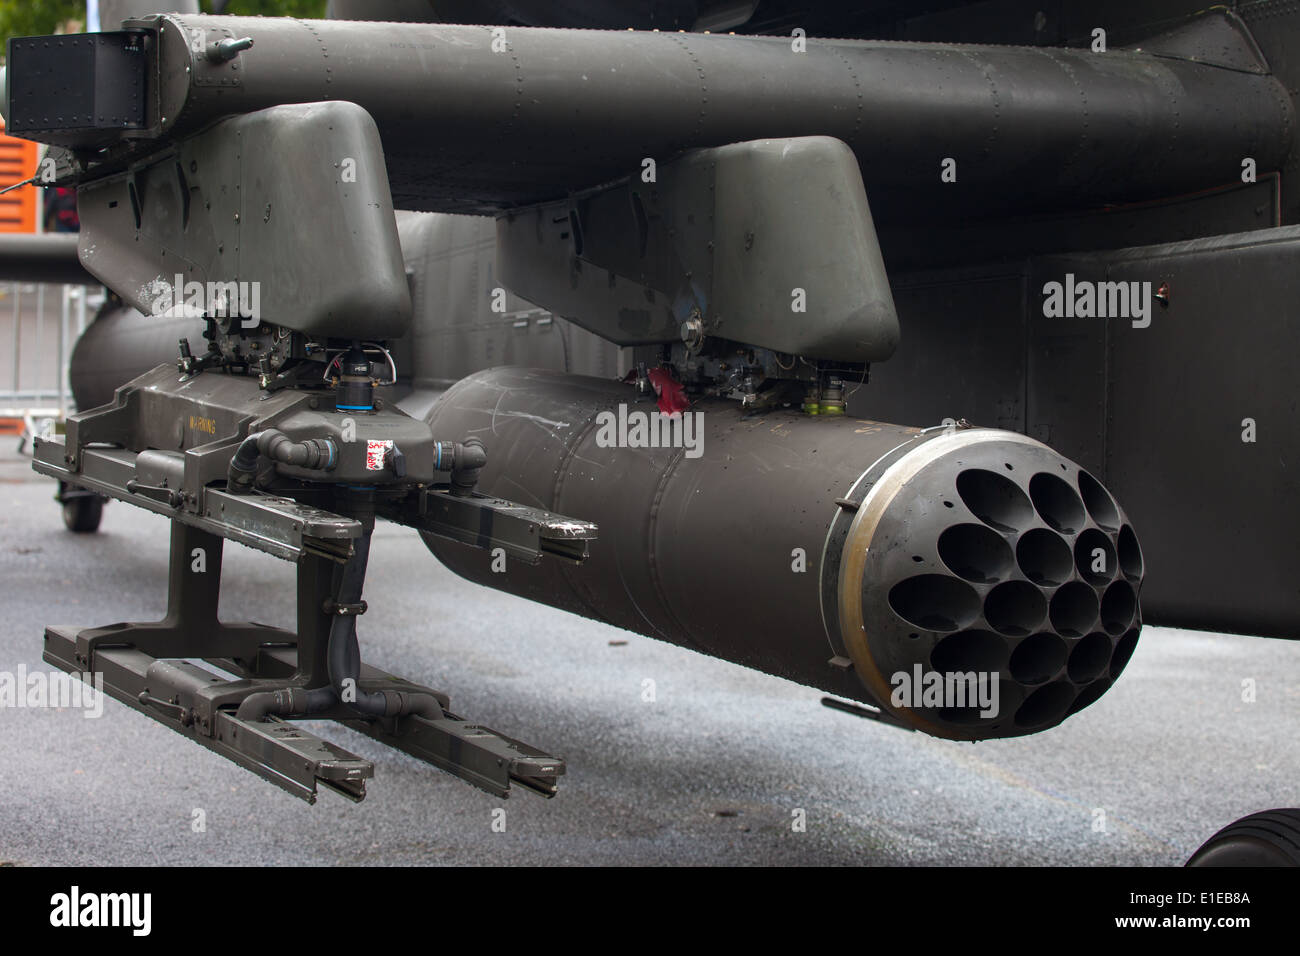 Close up detail of an Apache Helicopter rocket launcher - Stock Image